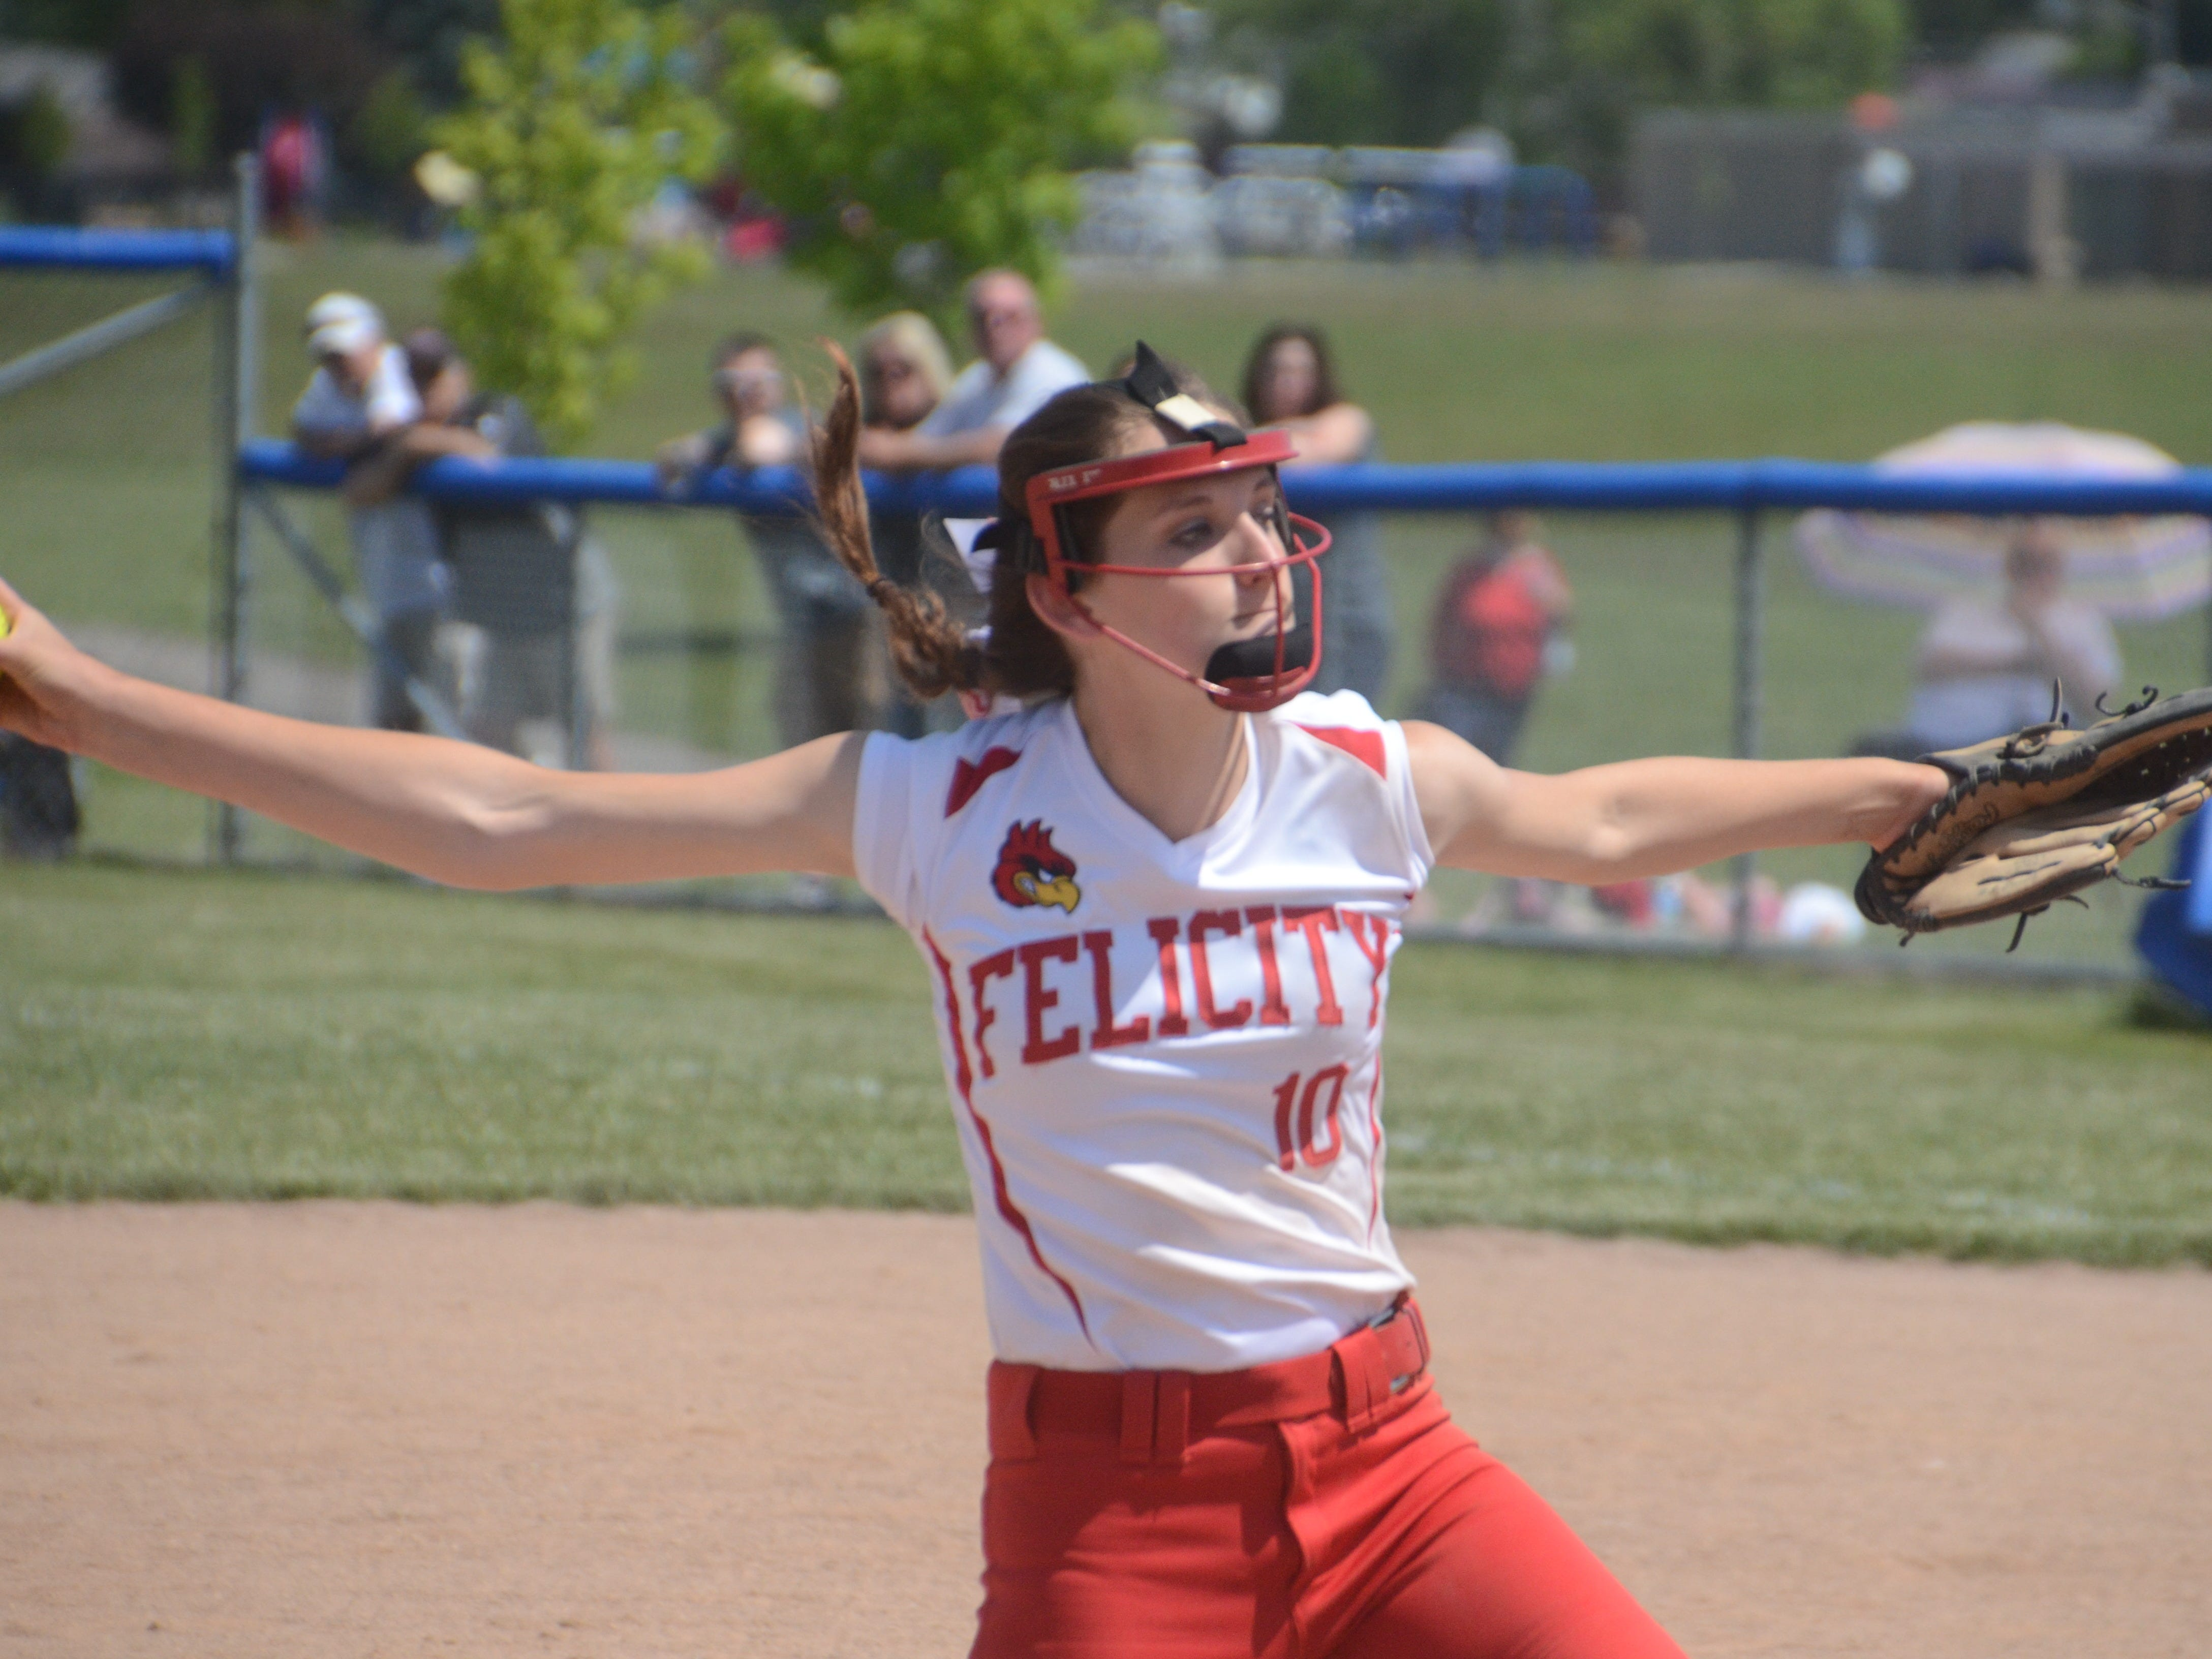 Senior Sandy Woodmansee pitches against Covington in the Division IV tournament May 23.